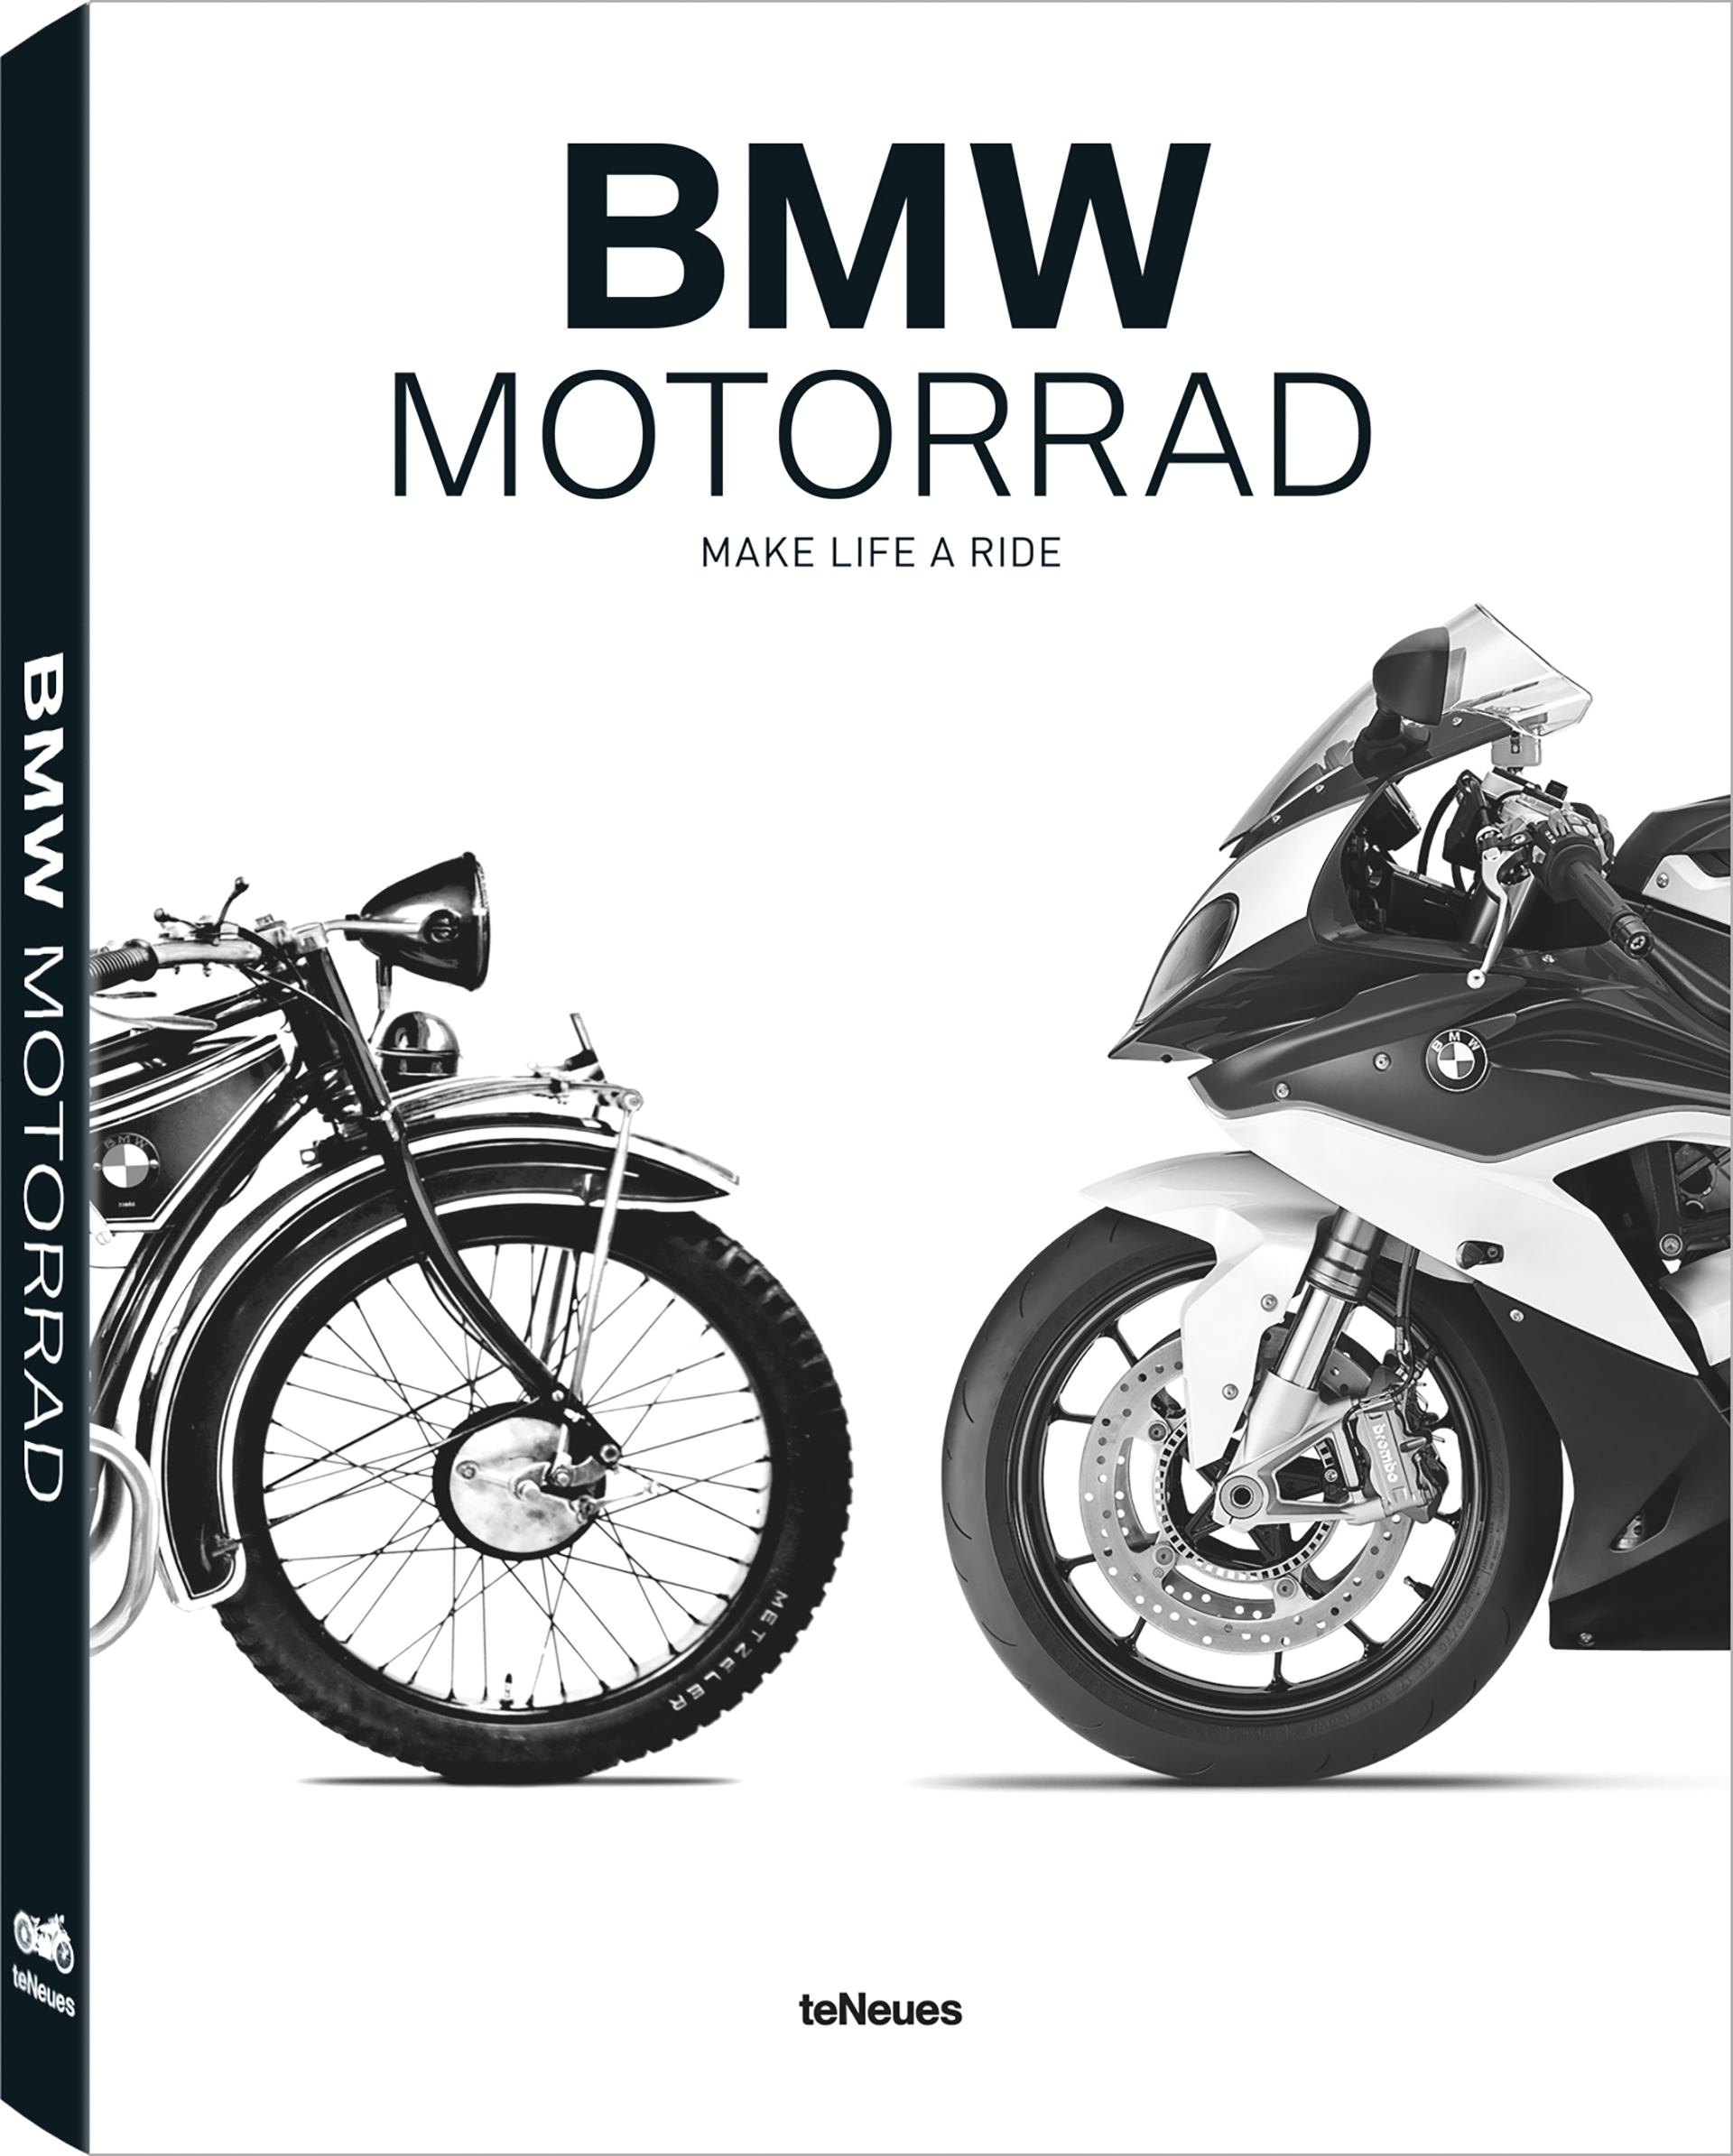 BMW Motorrad - Corporate Publishing teNeues